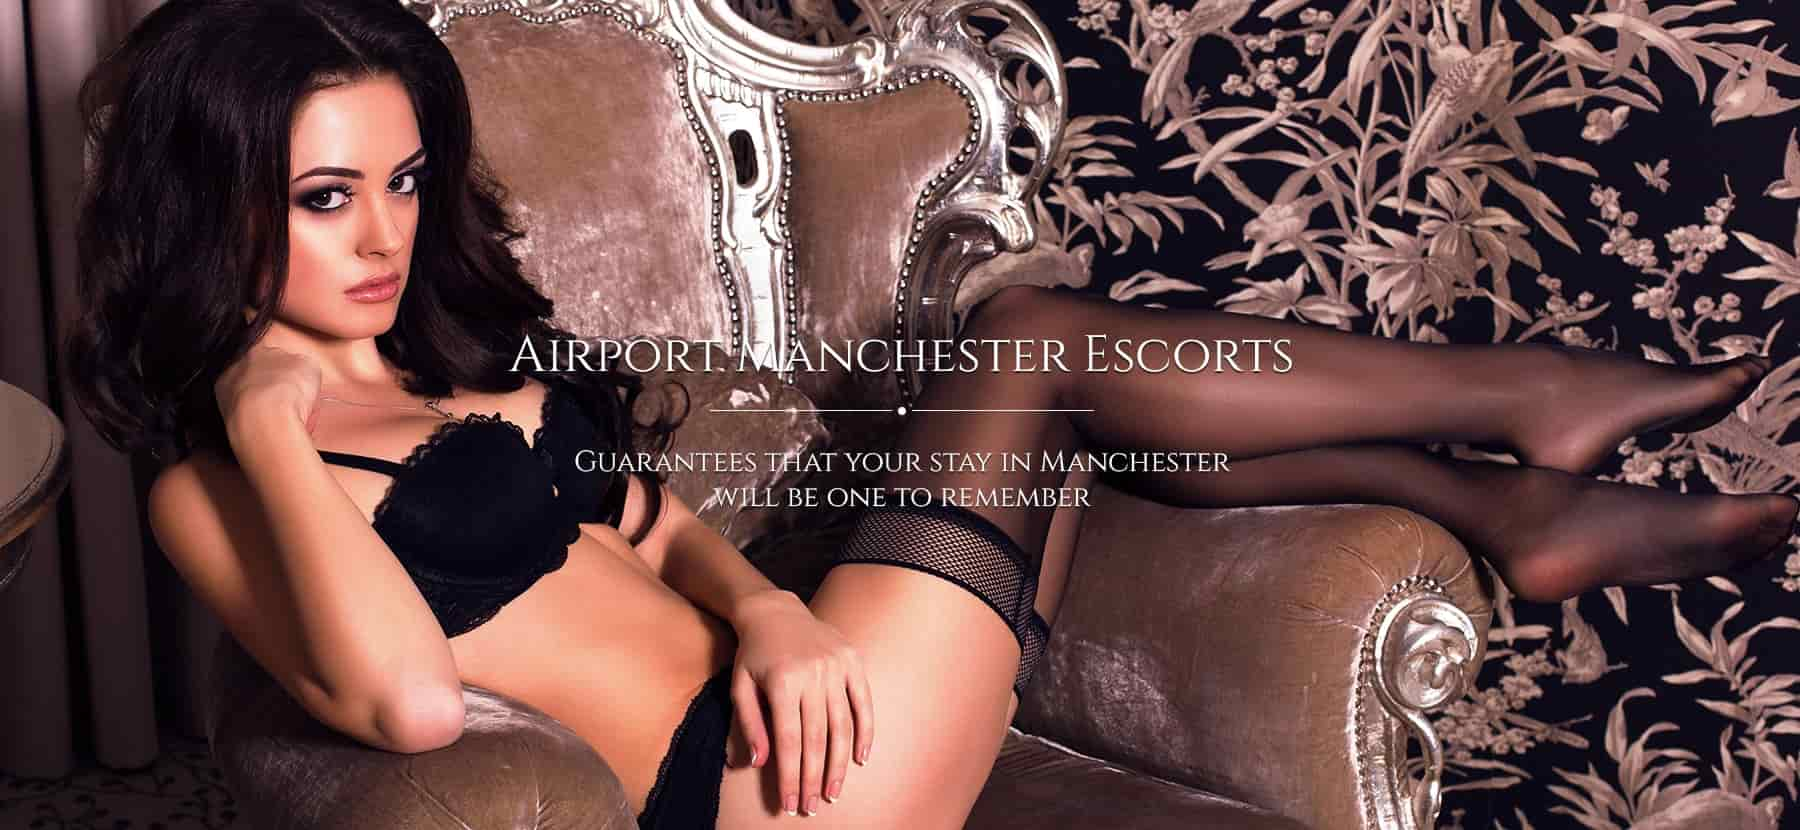 Airport Manchester Escorts